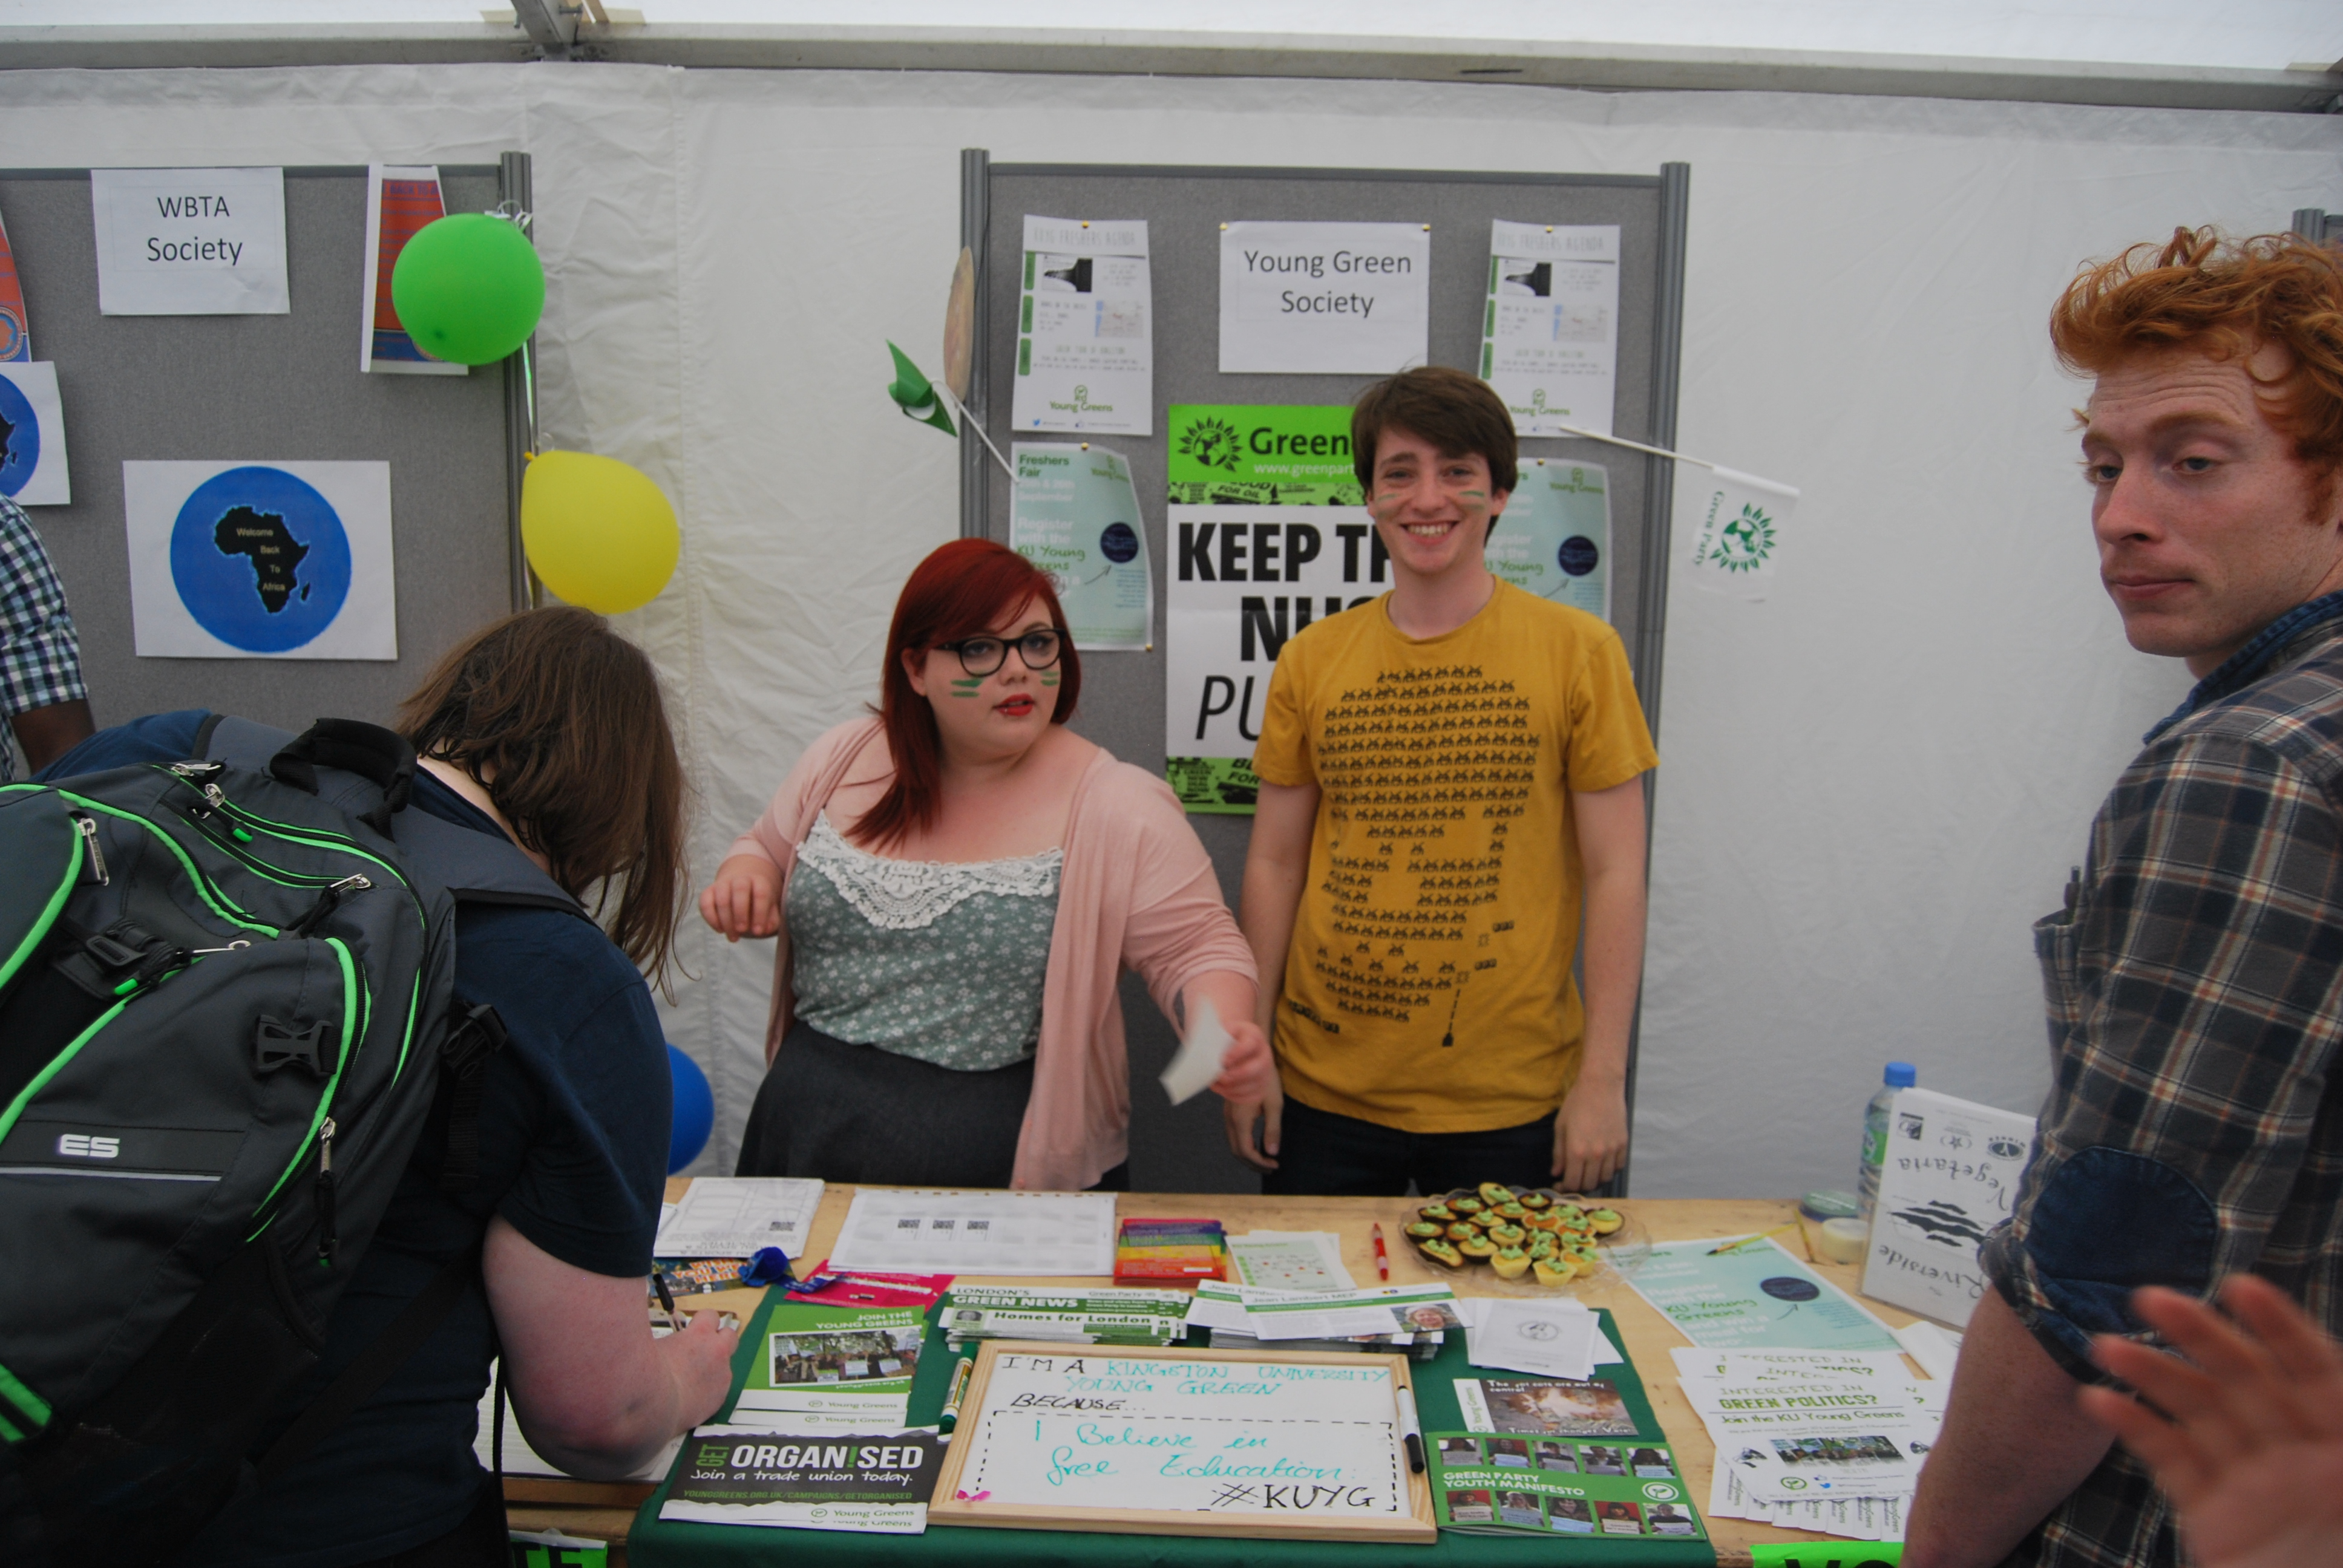 The Young Green Society smile as another signs up